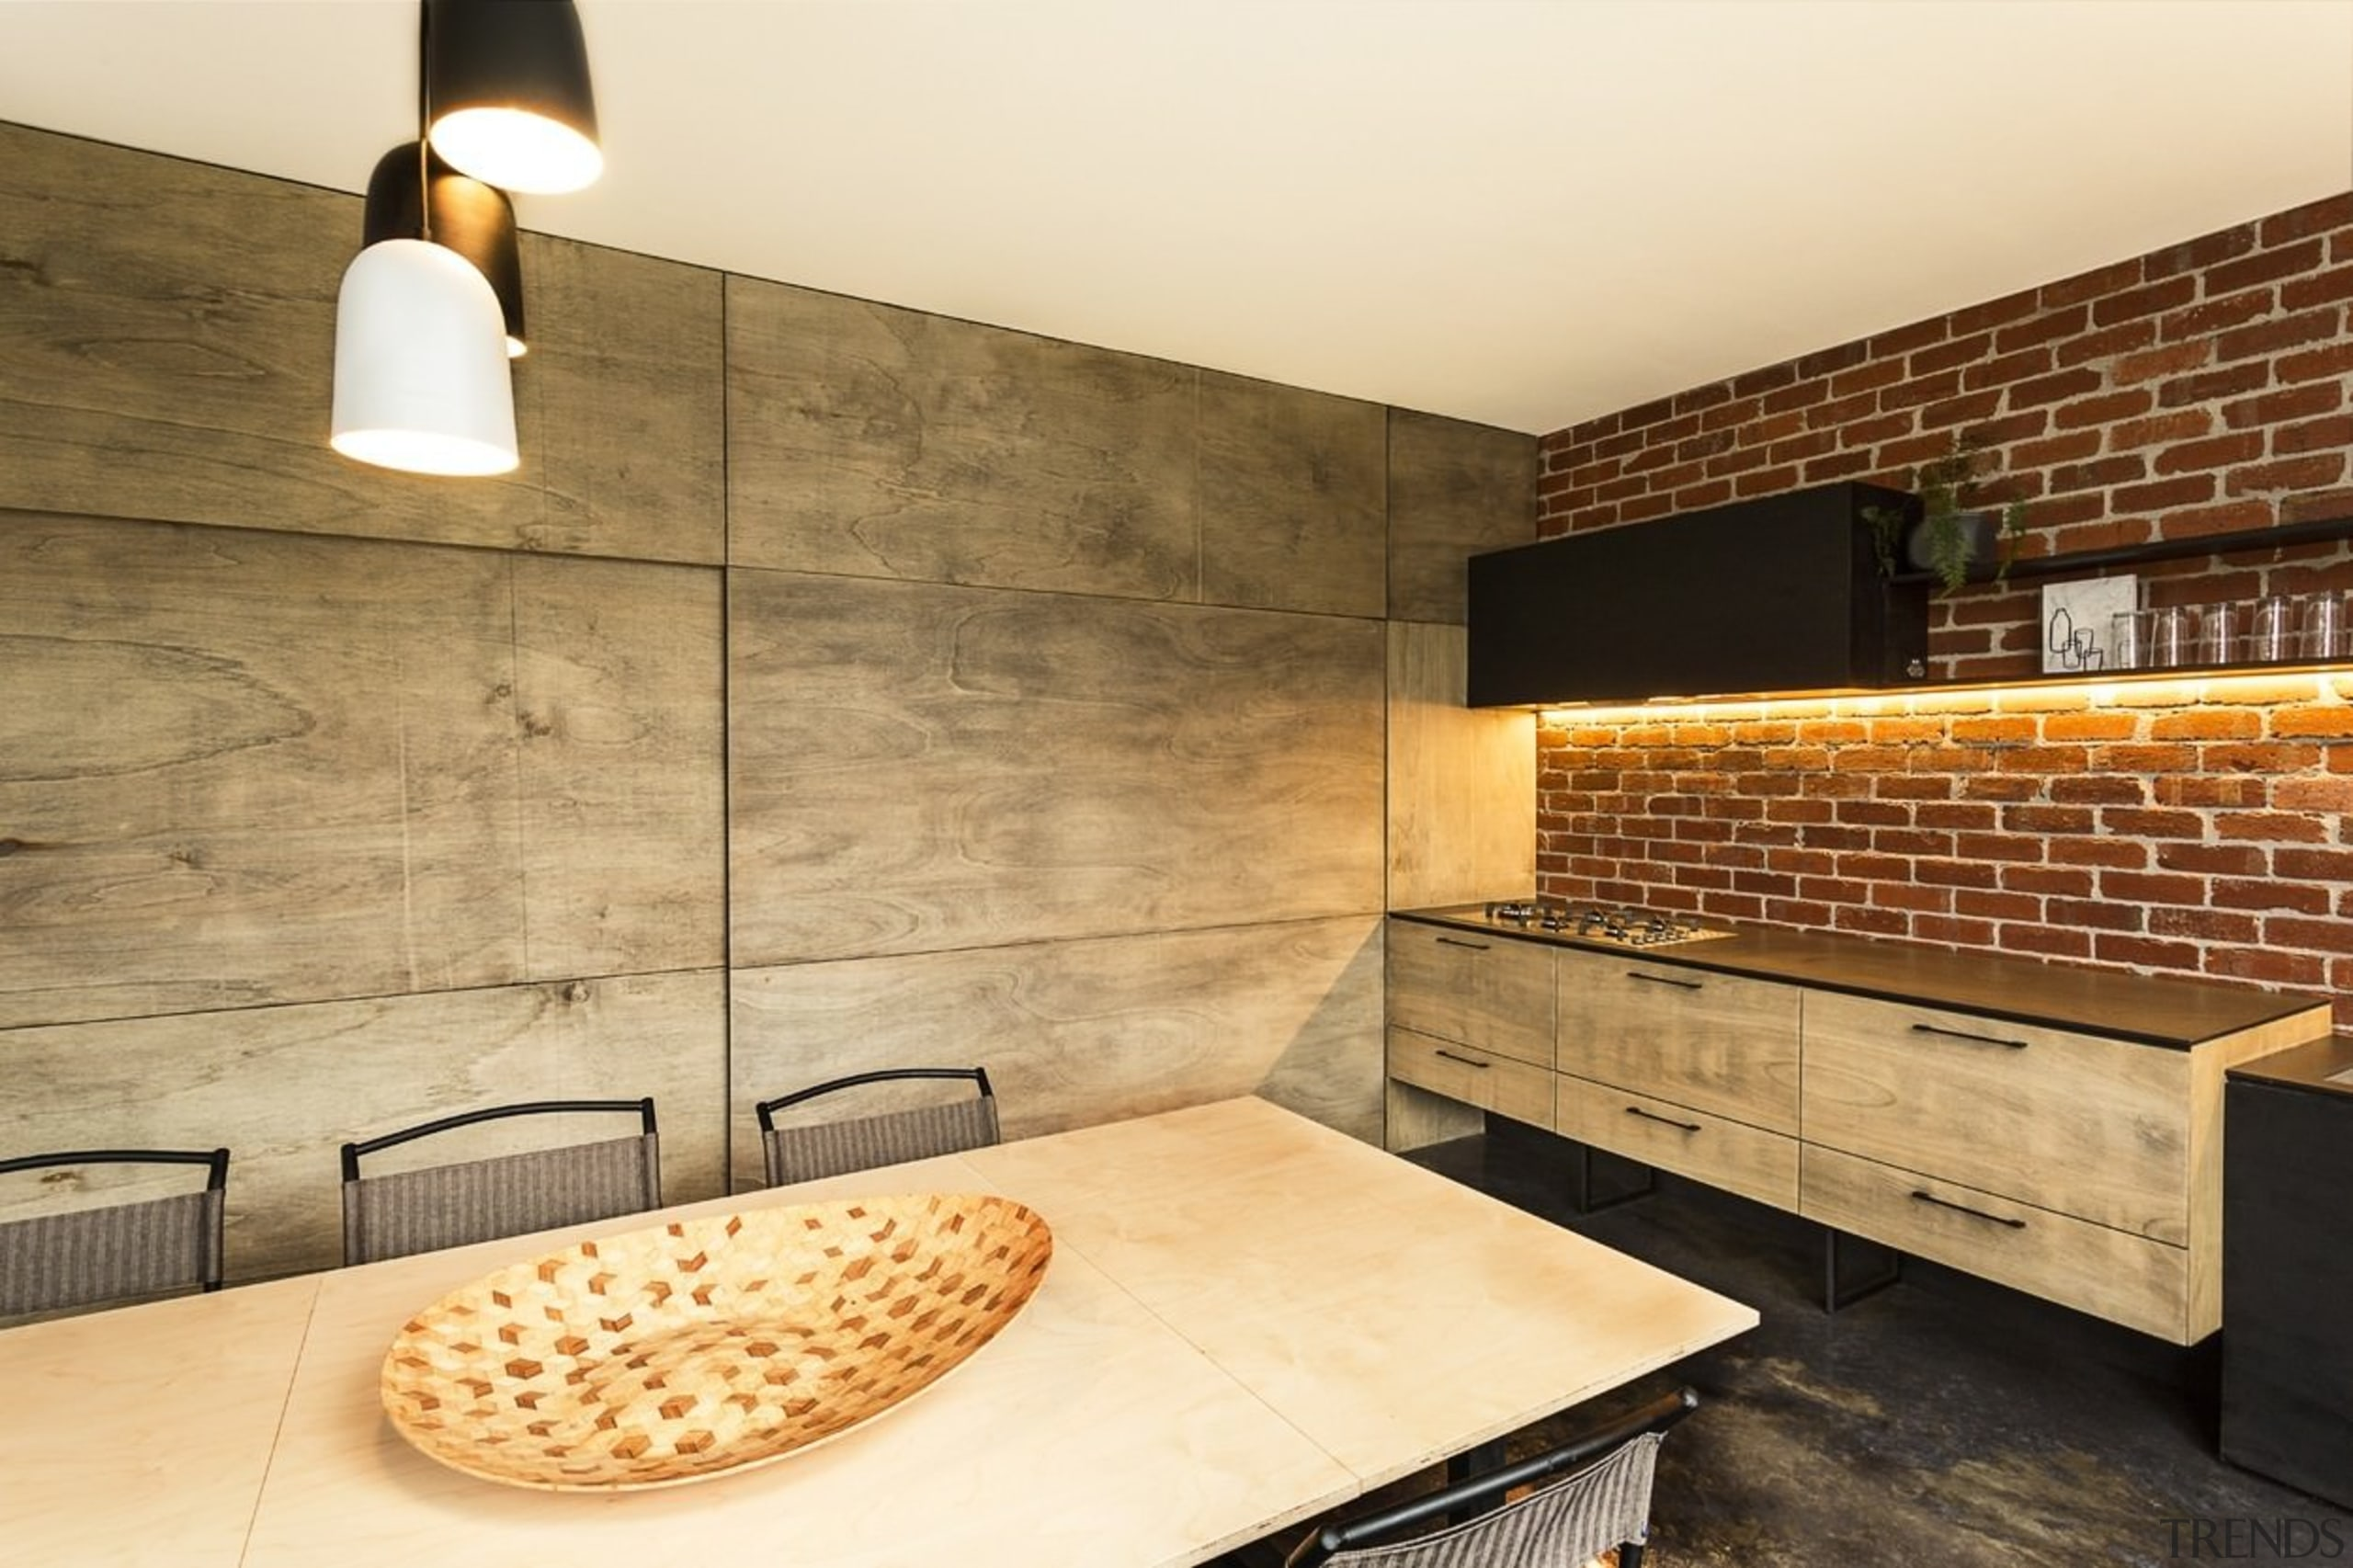 Pushing the kitchen up against the wall means countertop, floor, flooring, interior design, tile, wall, orange, brown